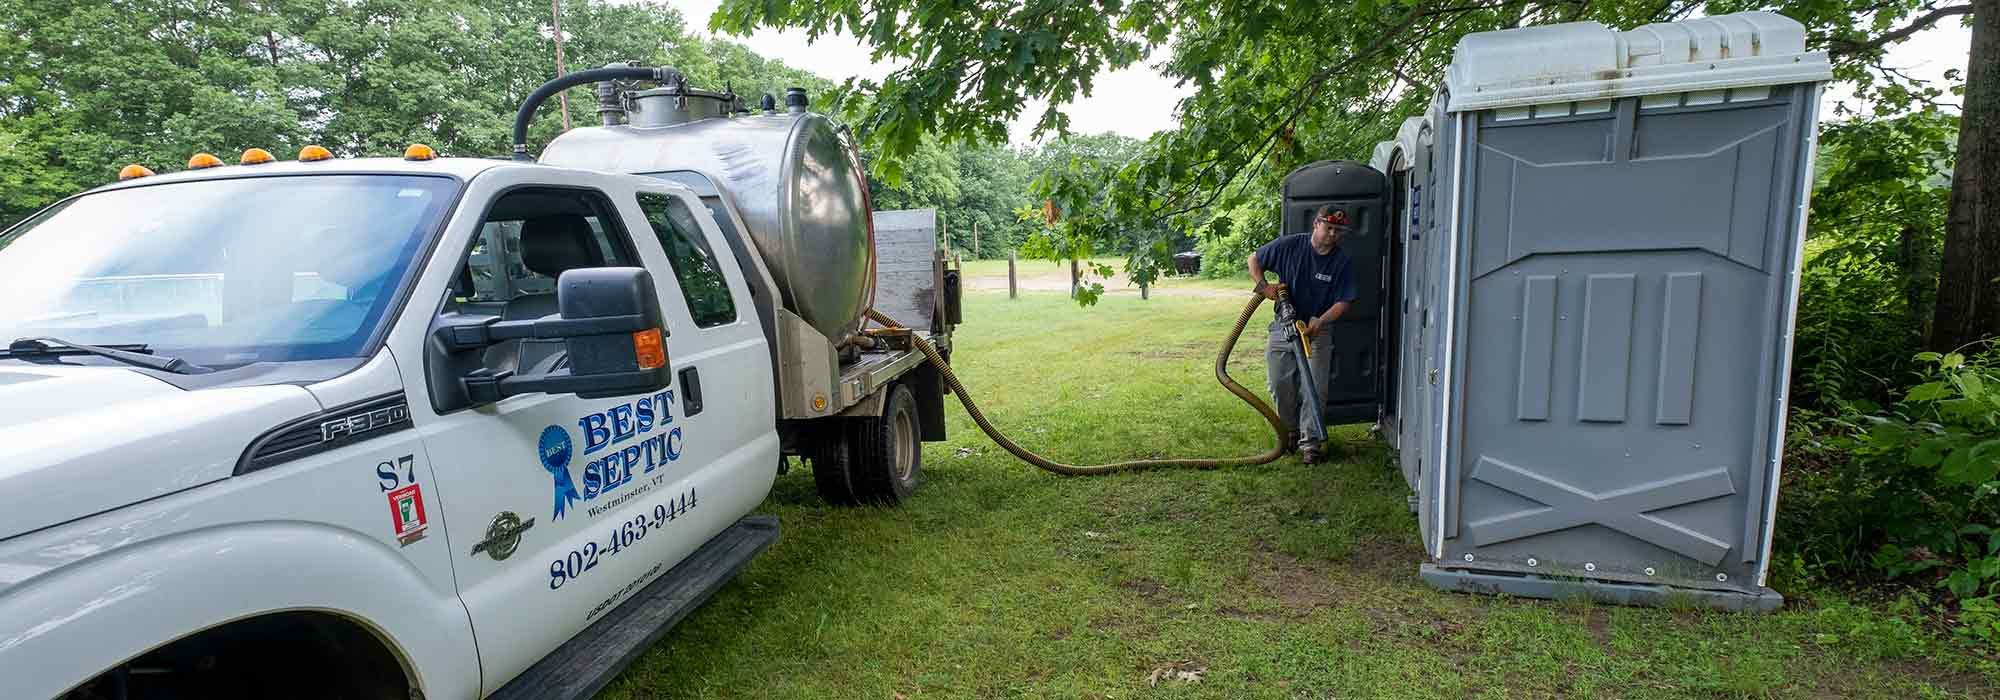 septic worker working on portable toilet